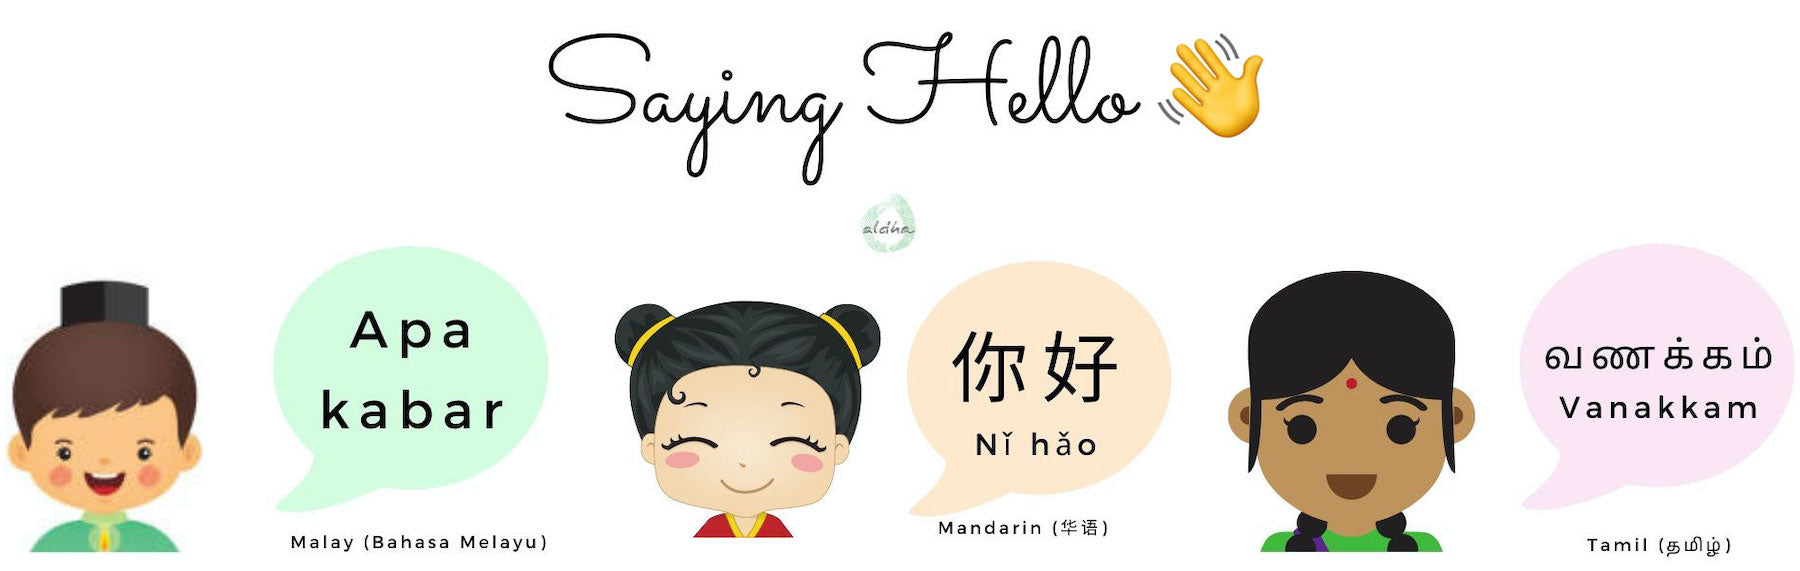 Saying hello in 3 different languages Singapore